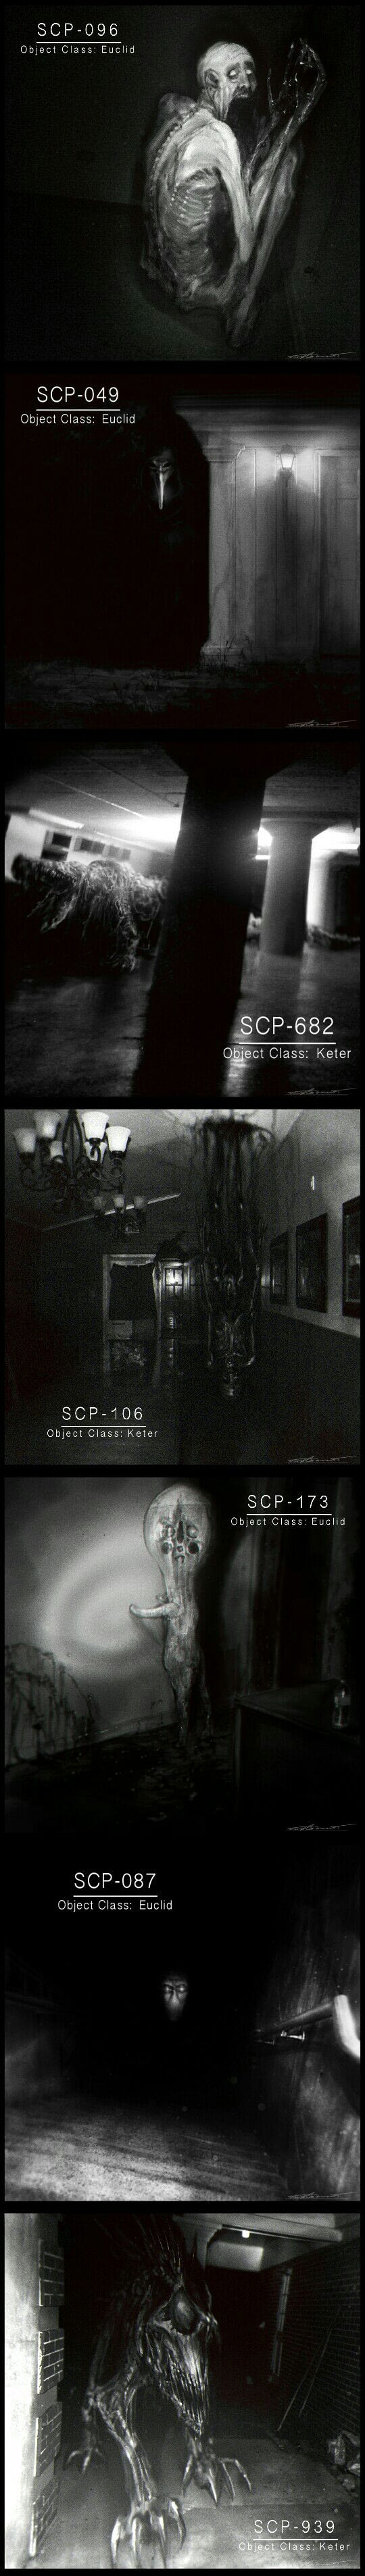 Creepy SCP monsters by Cinemamind